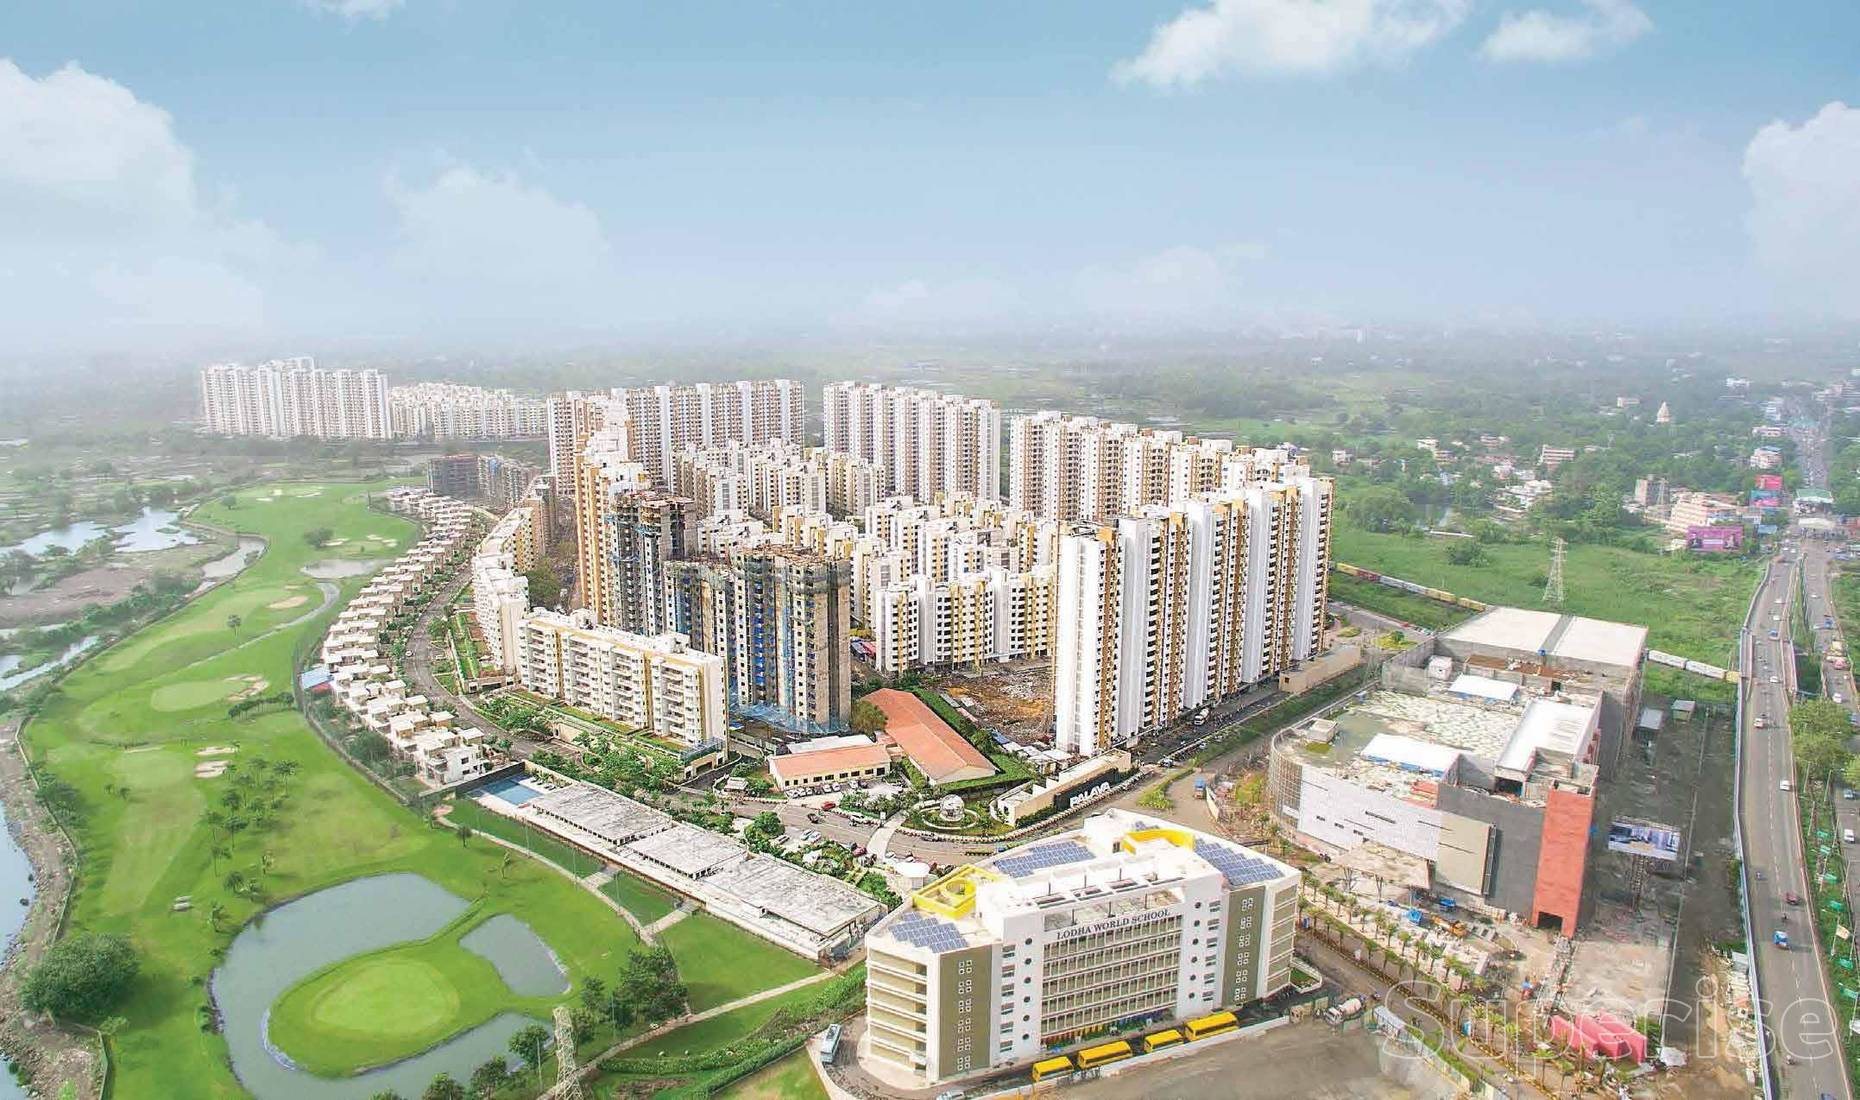 Is it good to invest in palava project by lodha ? How